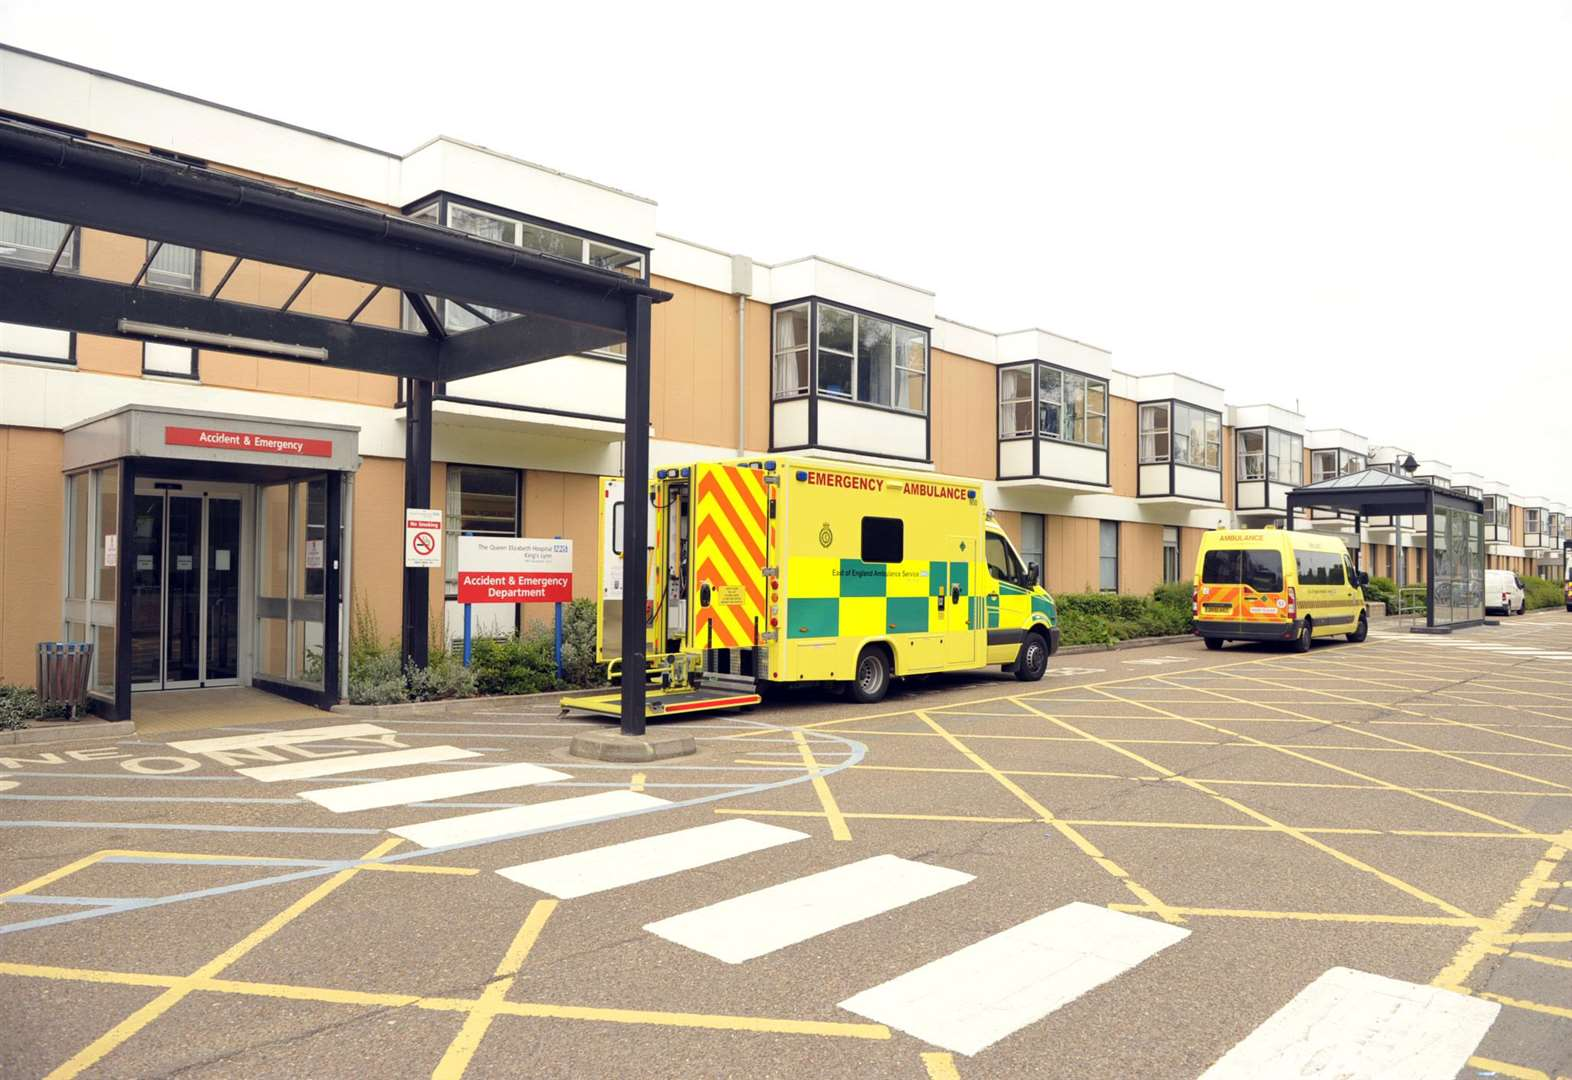 Lost appointments cost King's Lynn hospital £1 million in six months, figures show